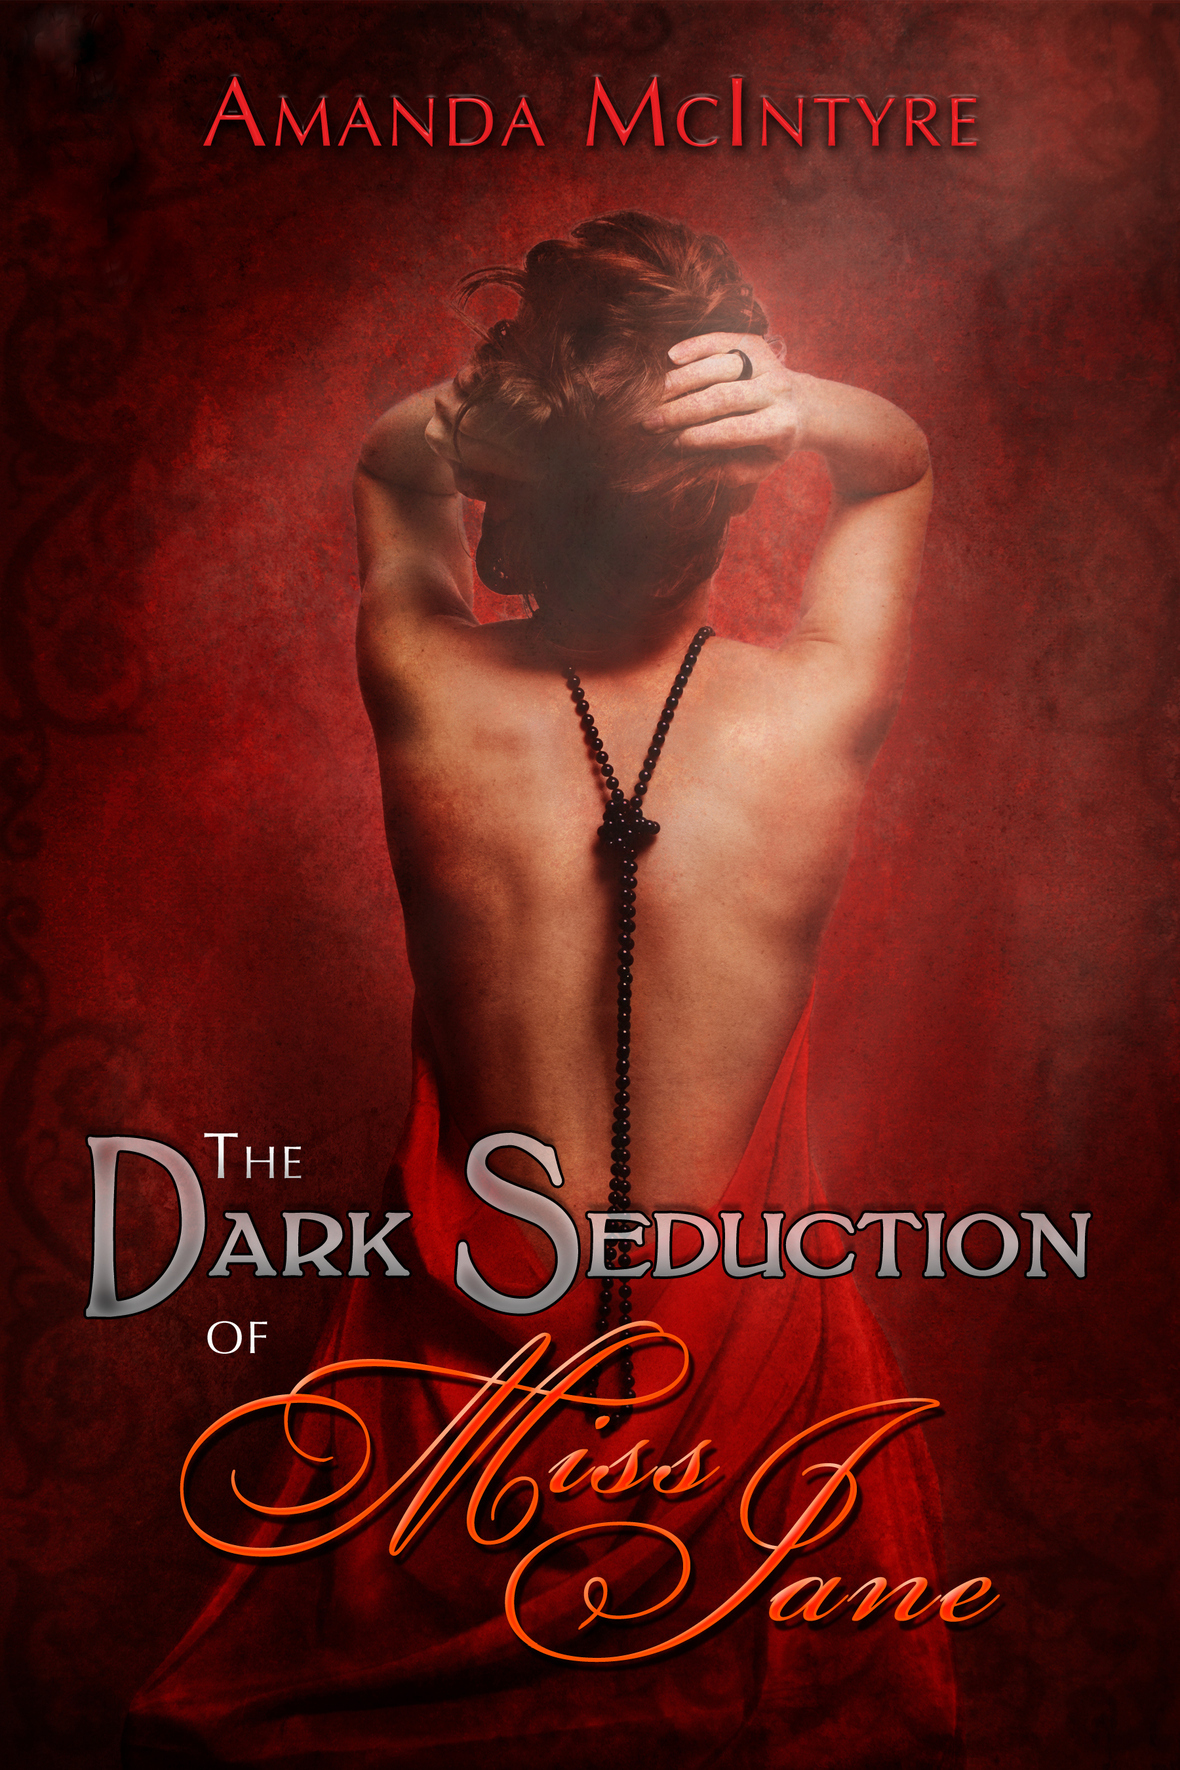 DarkSeductionofMissJane hires